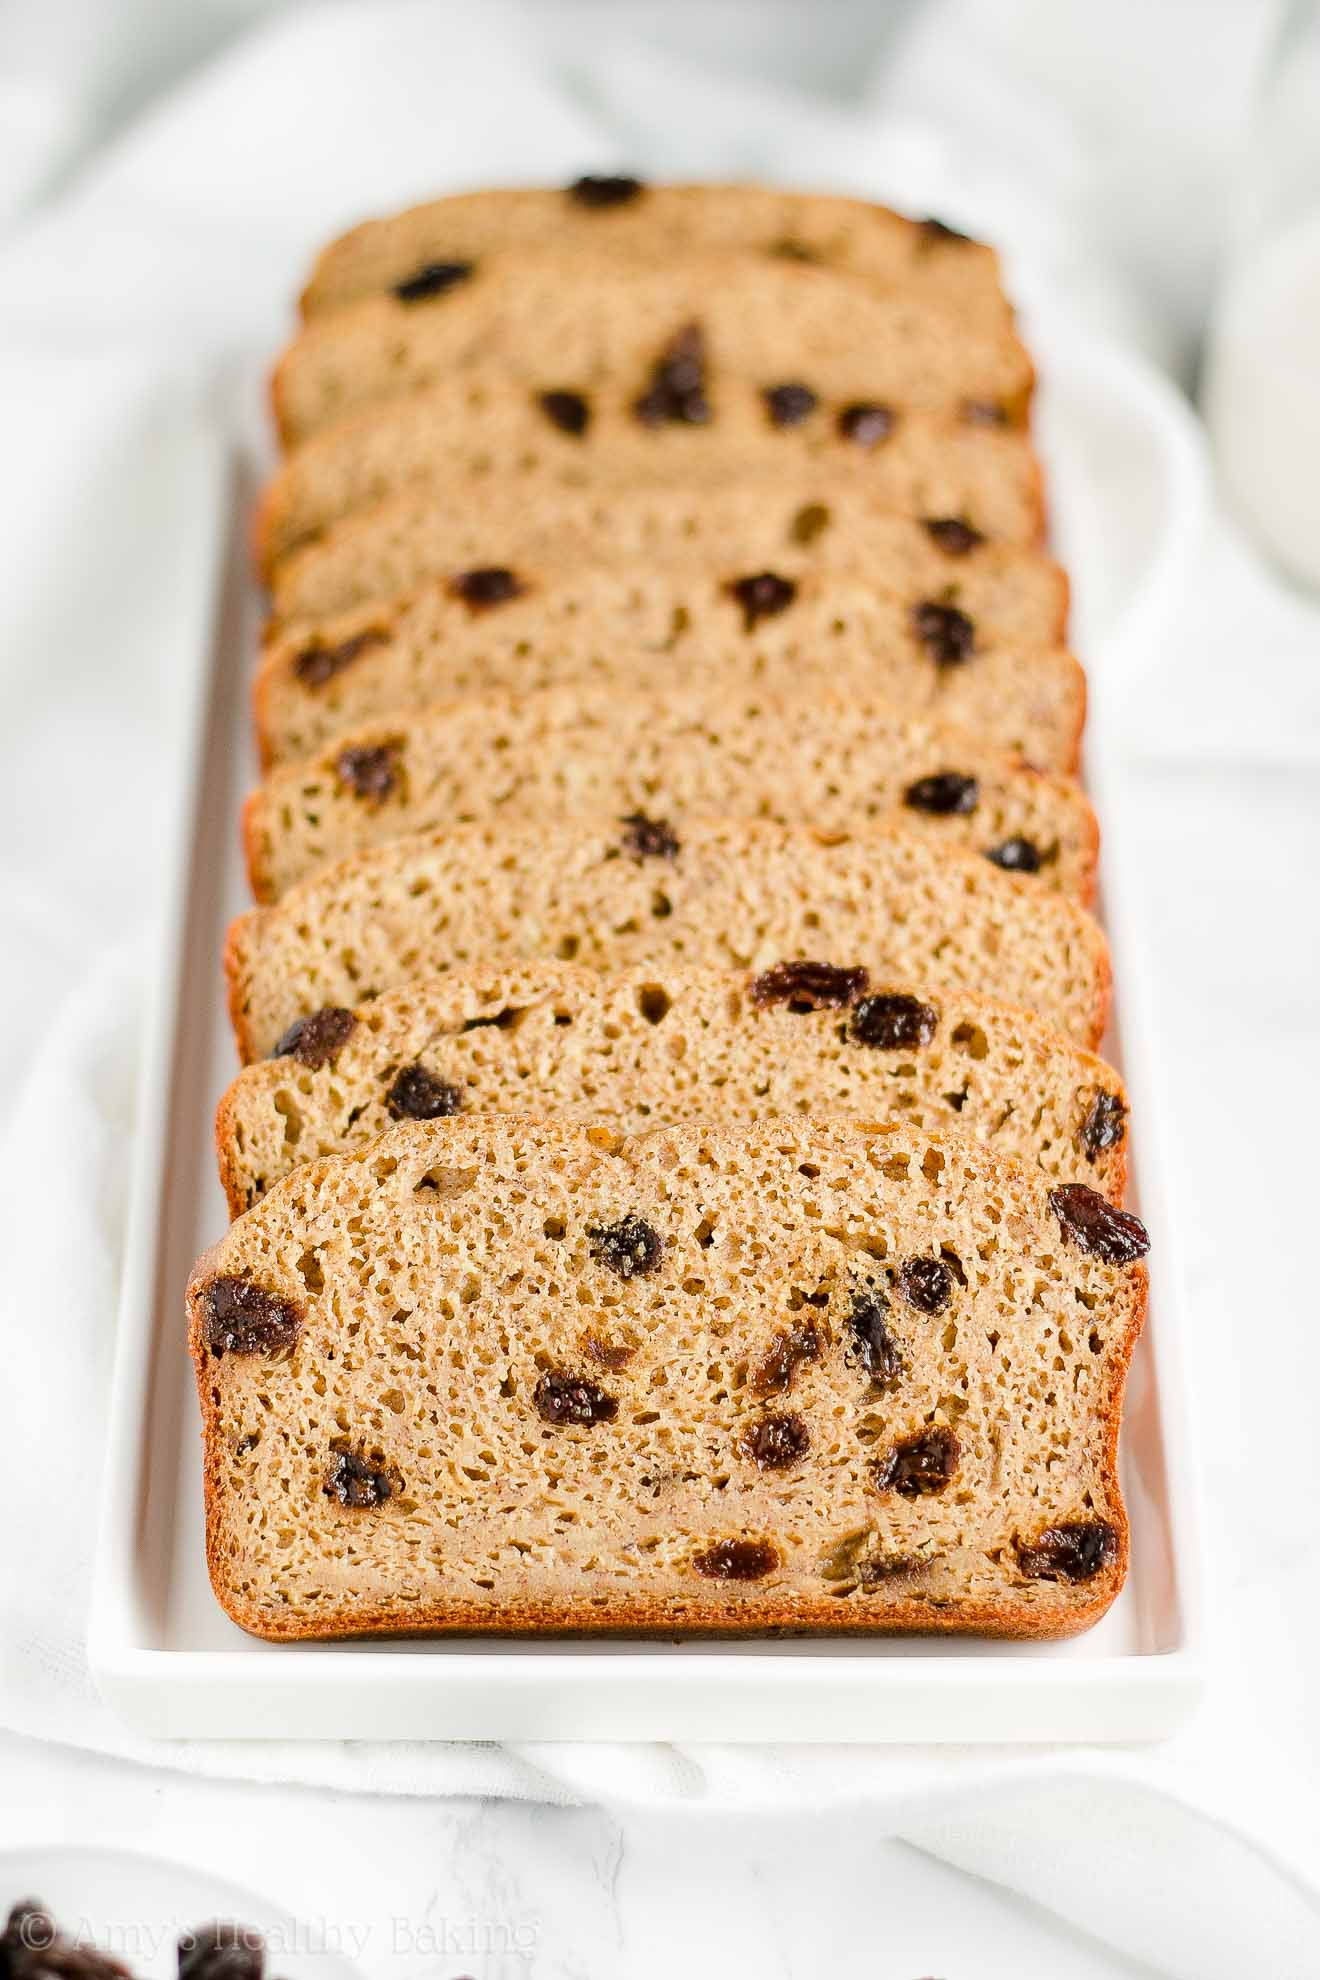 Healthy Cinnamon Raisin Banana Bread made with Greek yogurt